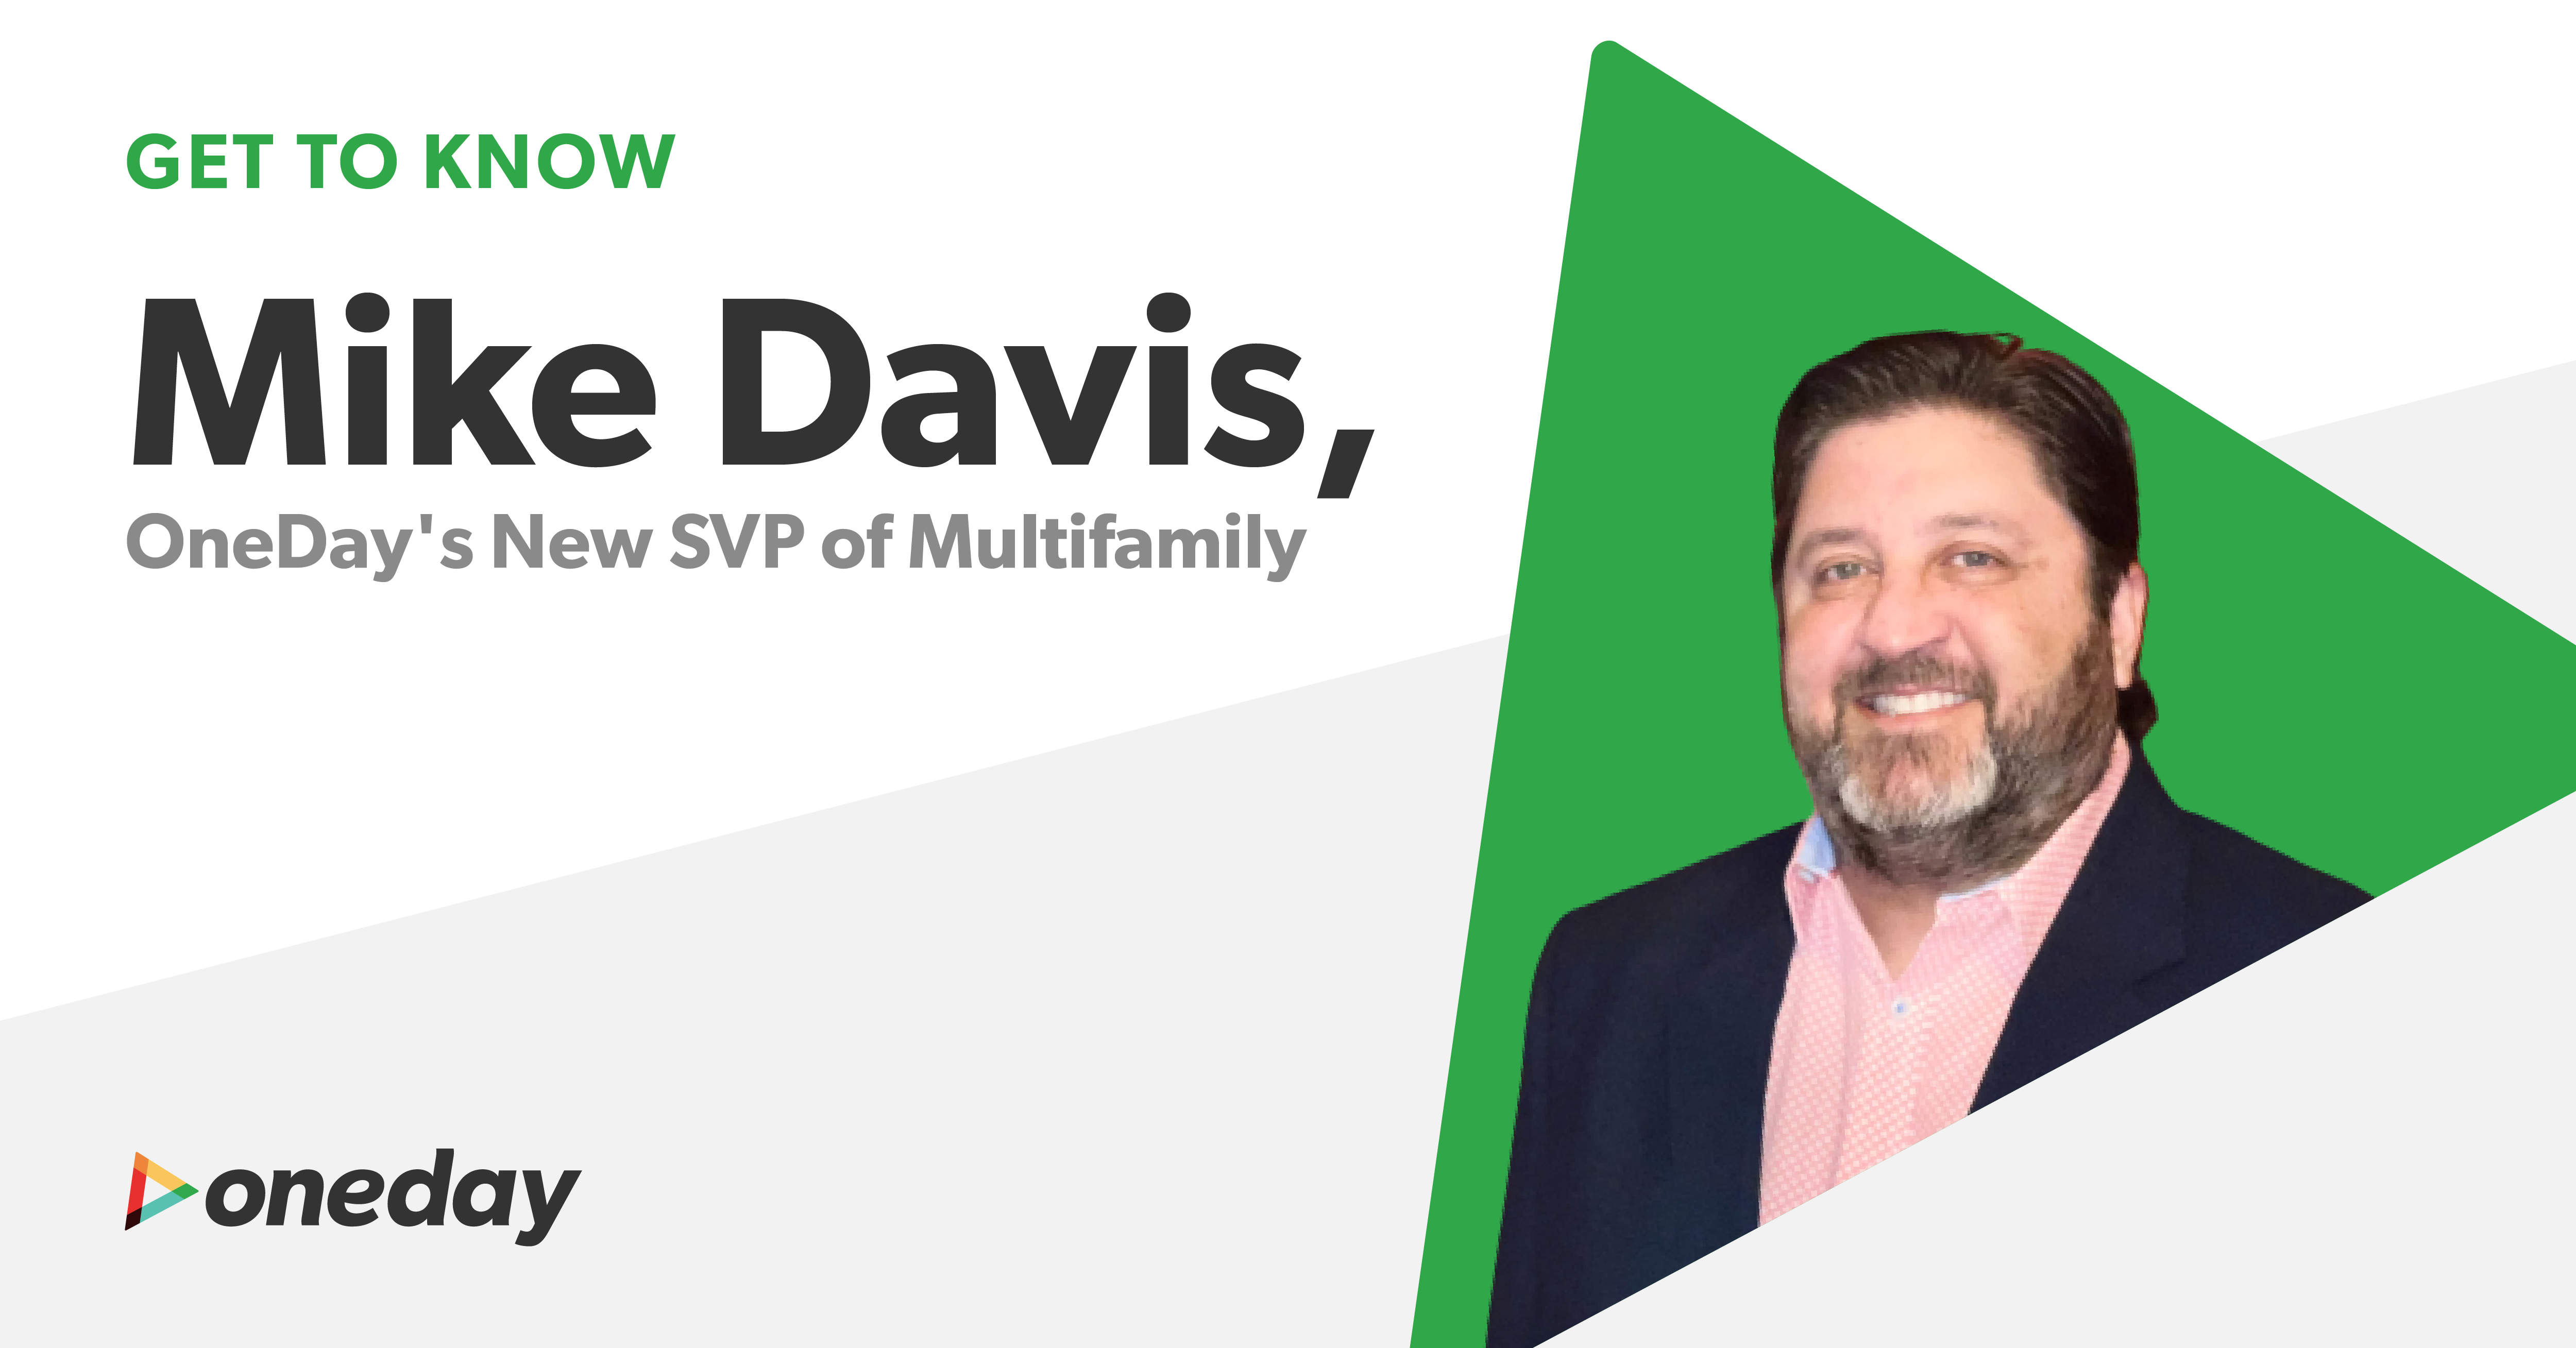 Get to know Mike Davis, OneDay's new SVP of Multifamily, whose experience and expertise are ideal to lead our new multifamily video solution, Convey by OneDay.